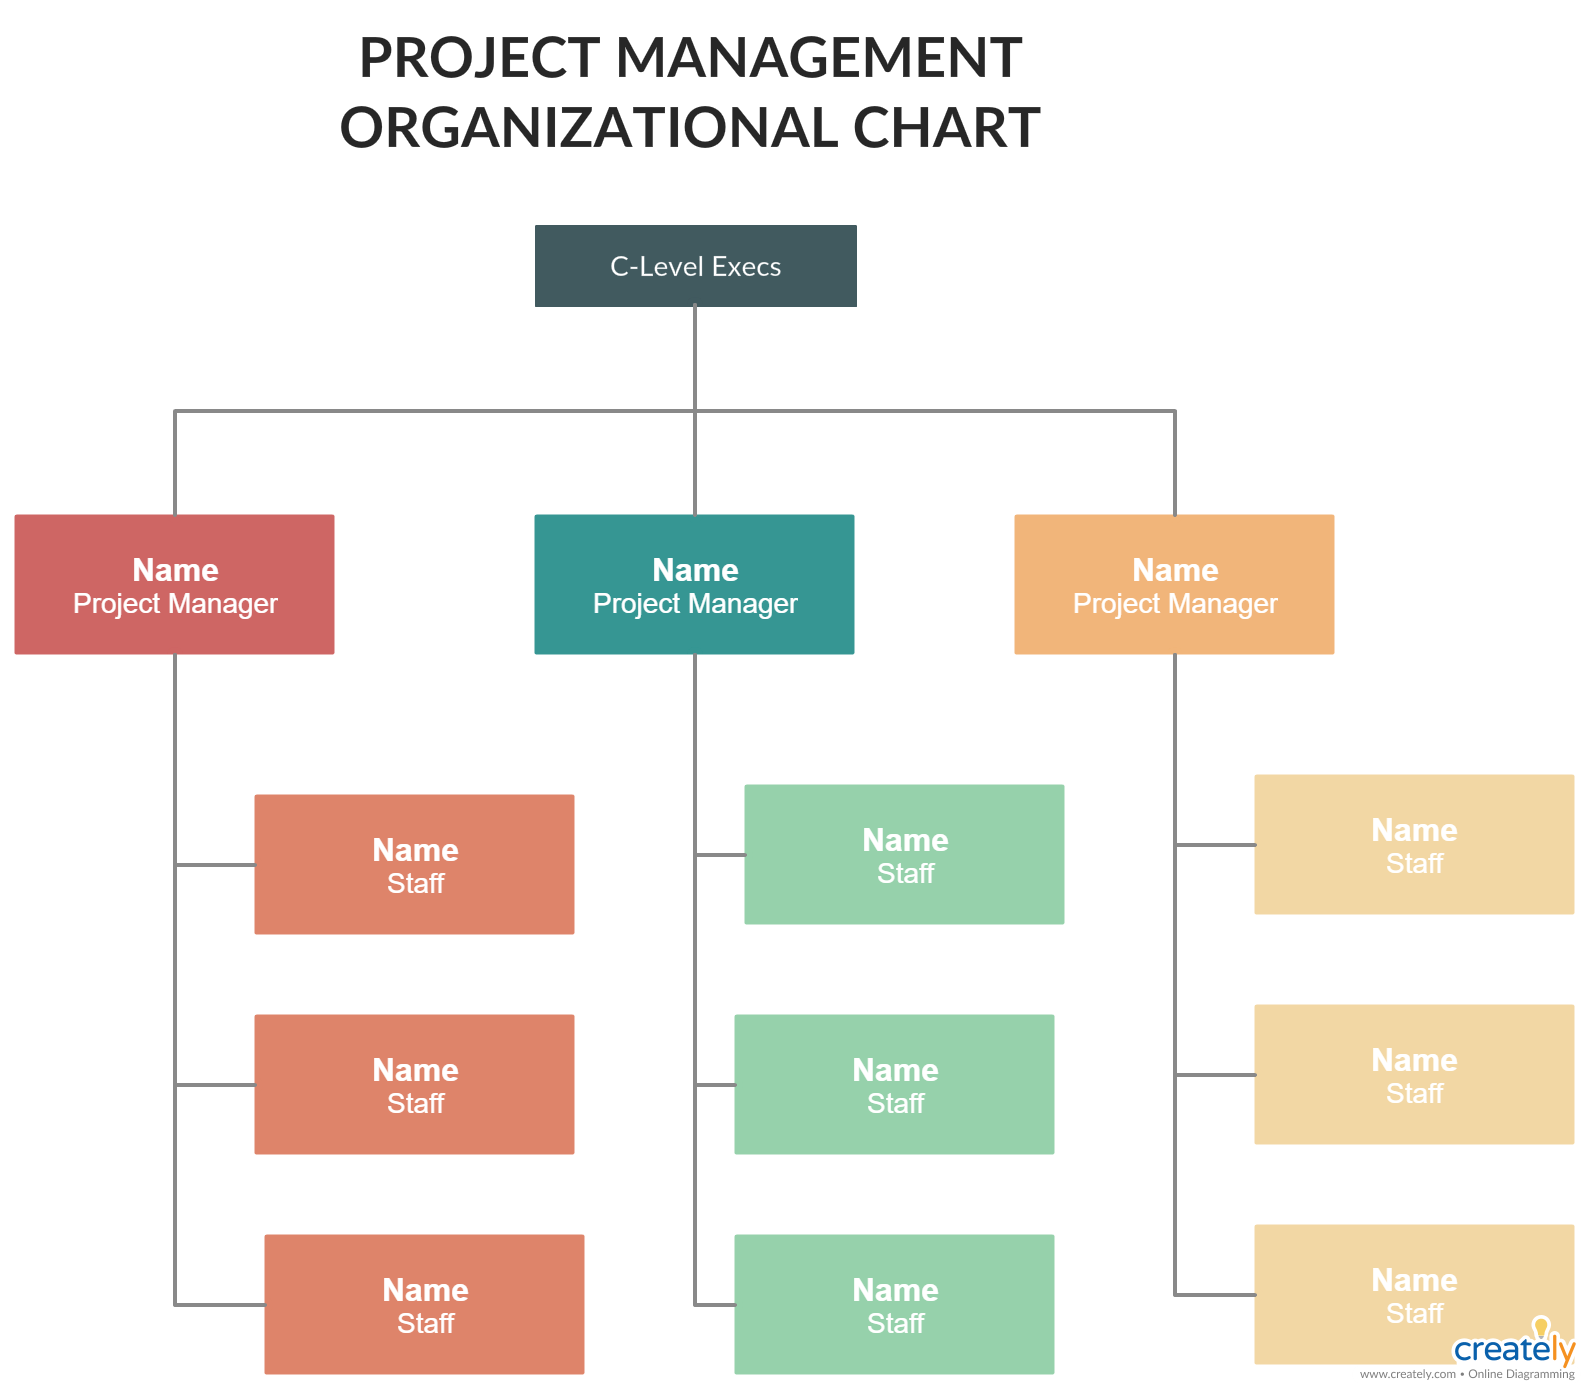 Project Management Organizational Structures - You can edit this